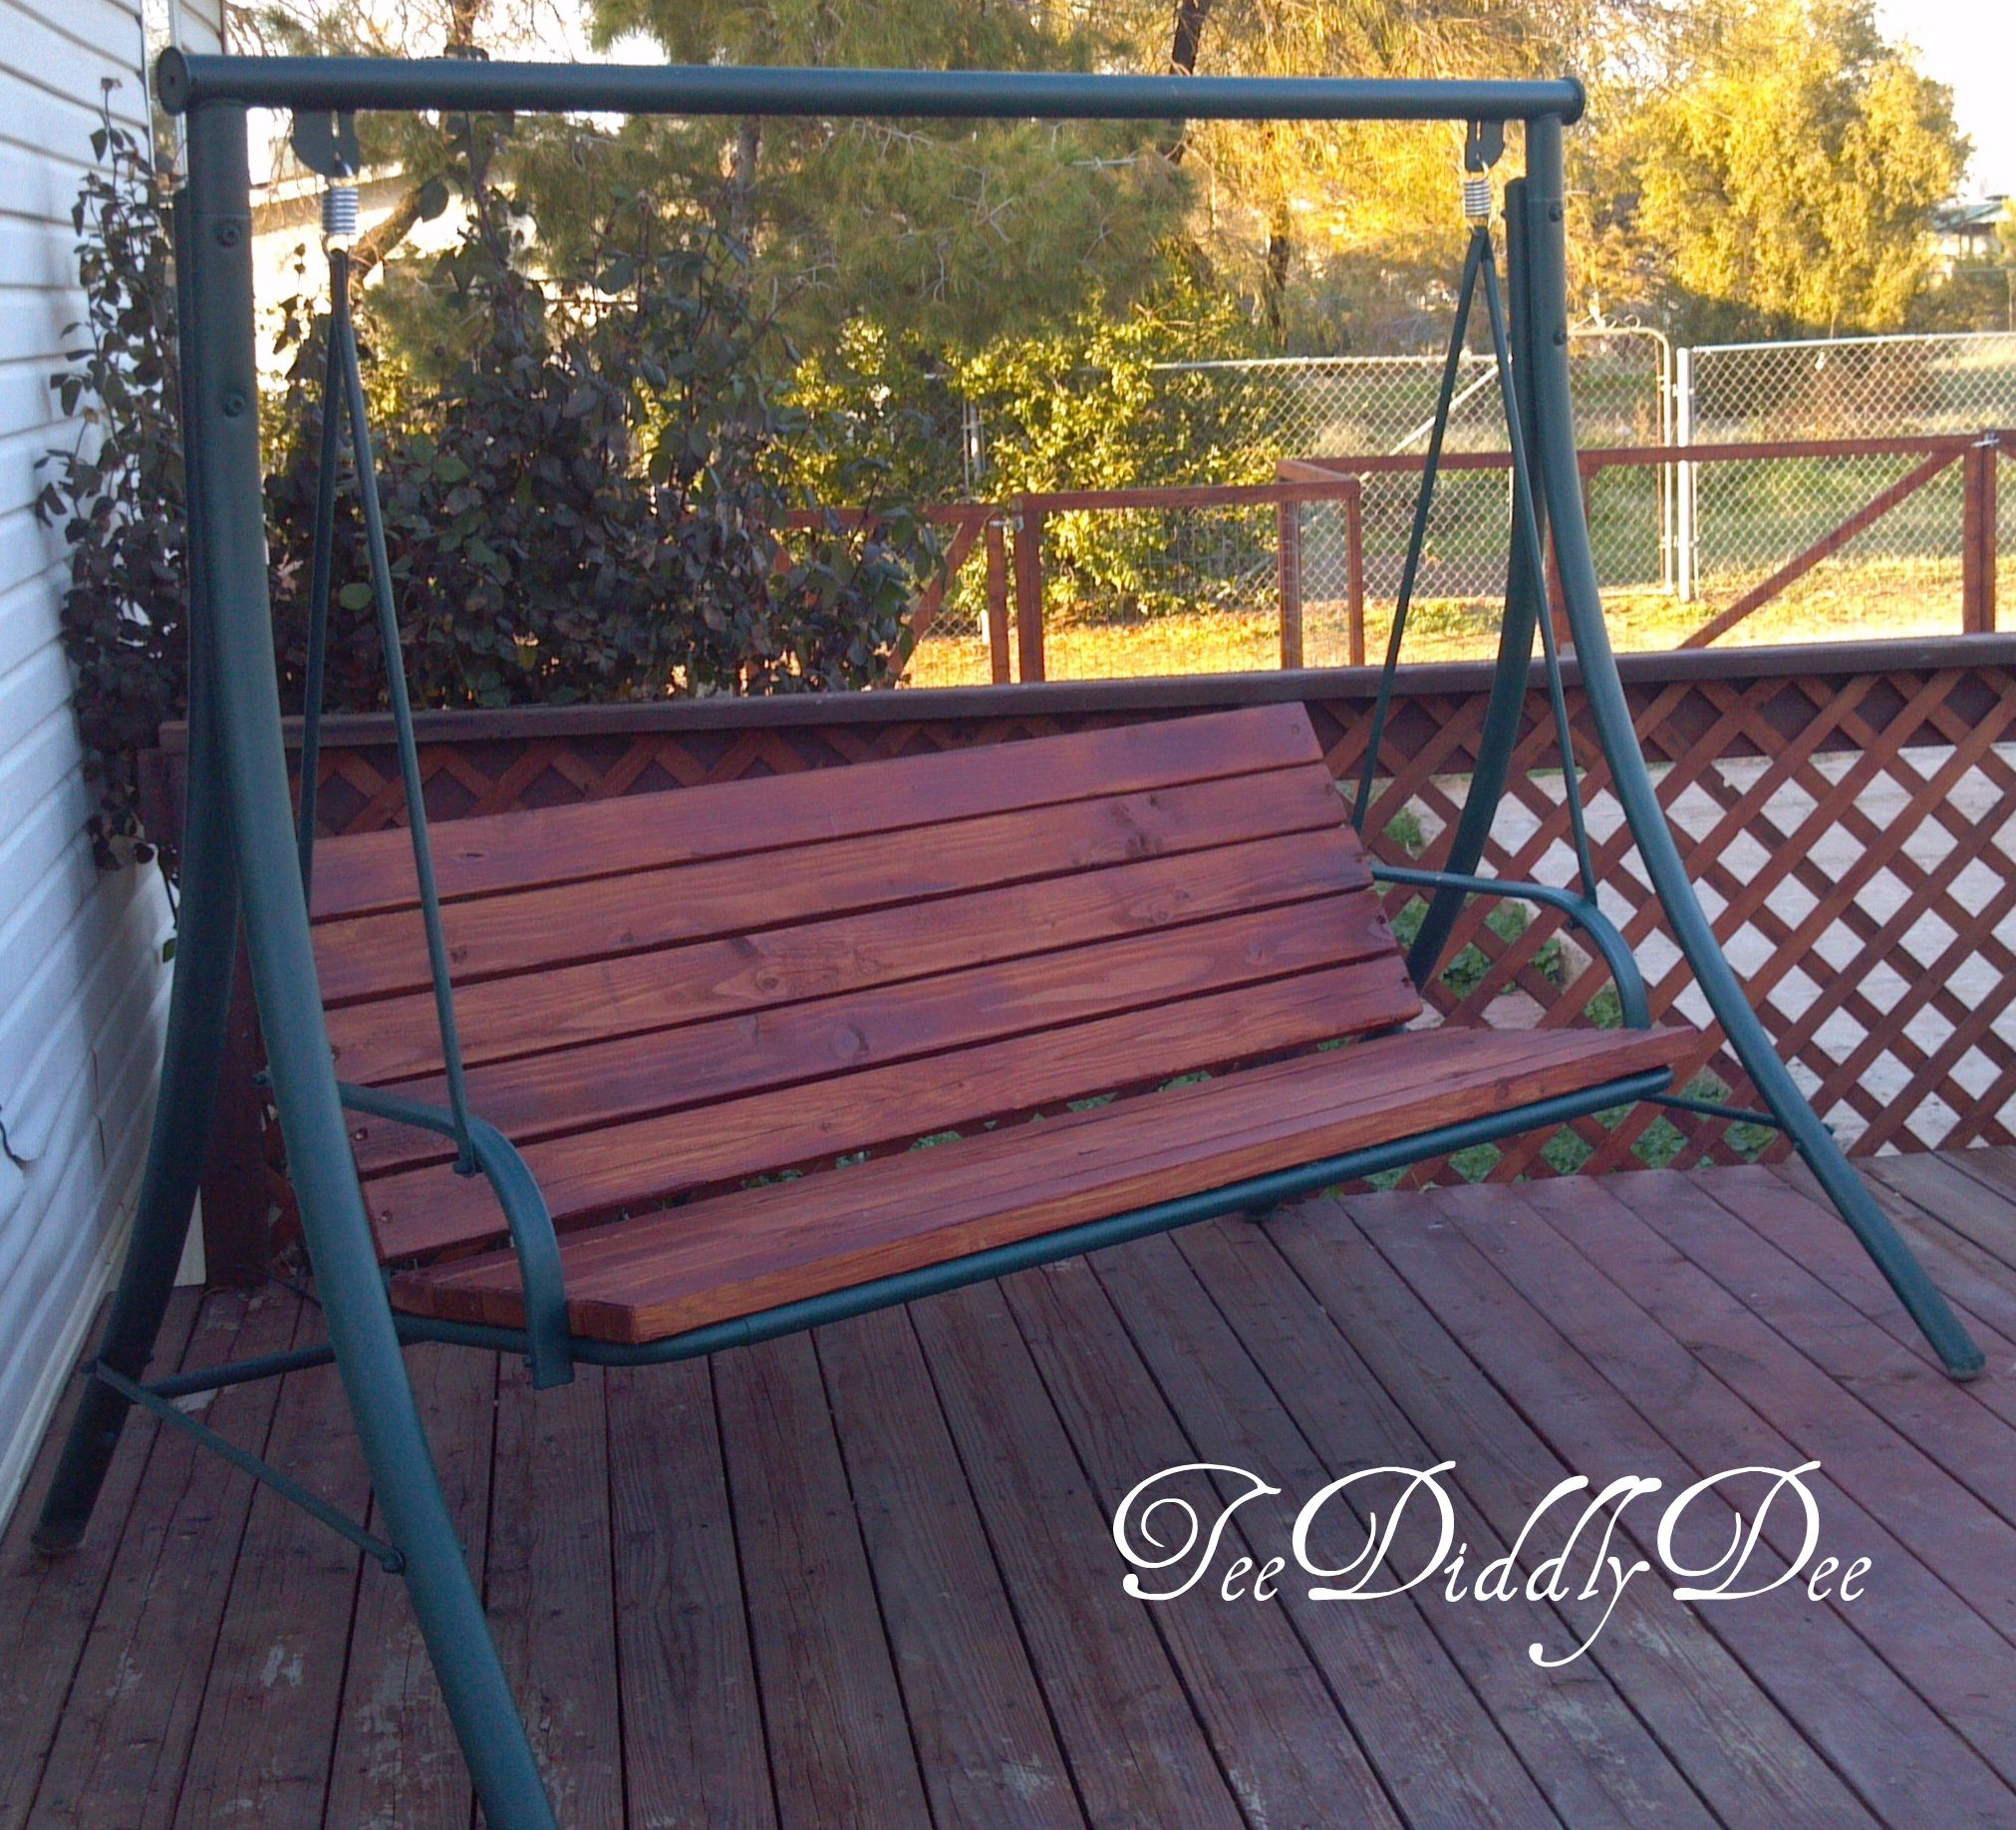 Refurbish Old Patio Swing Chair Into New Wooden One Teediddlydee Blog